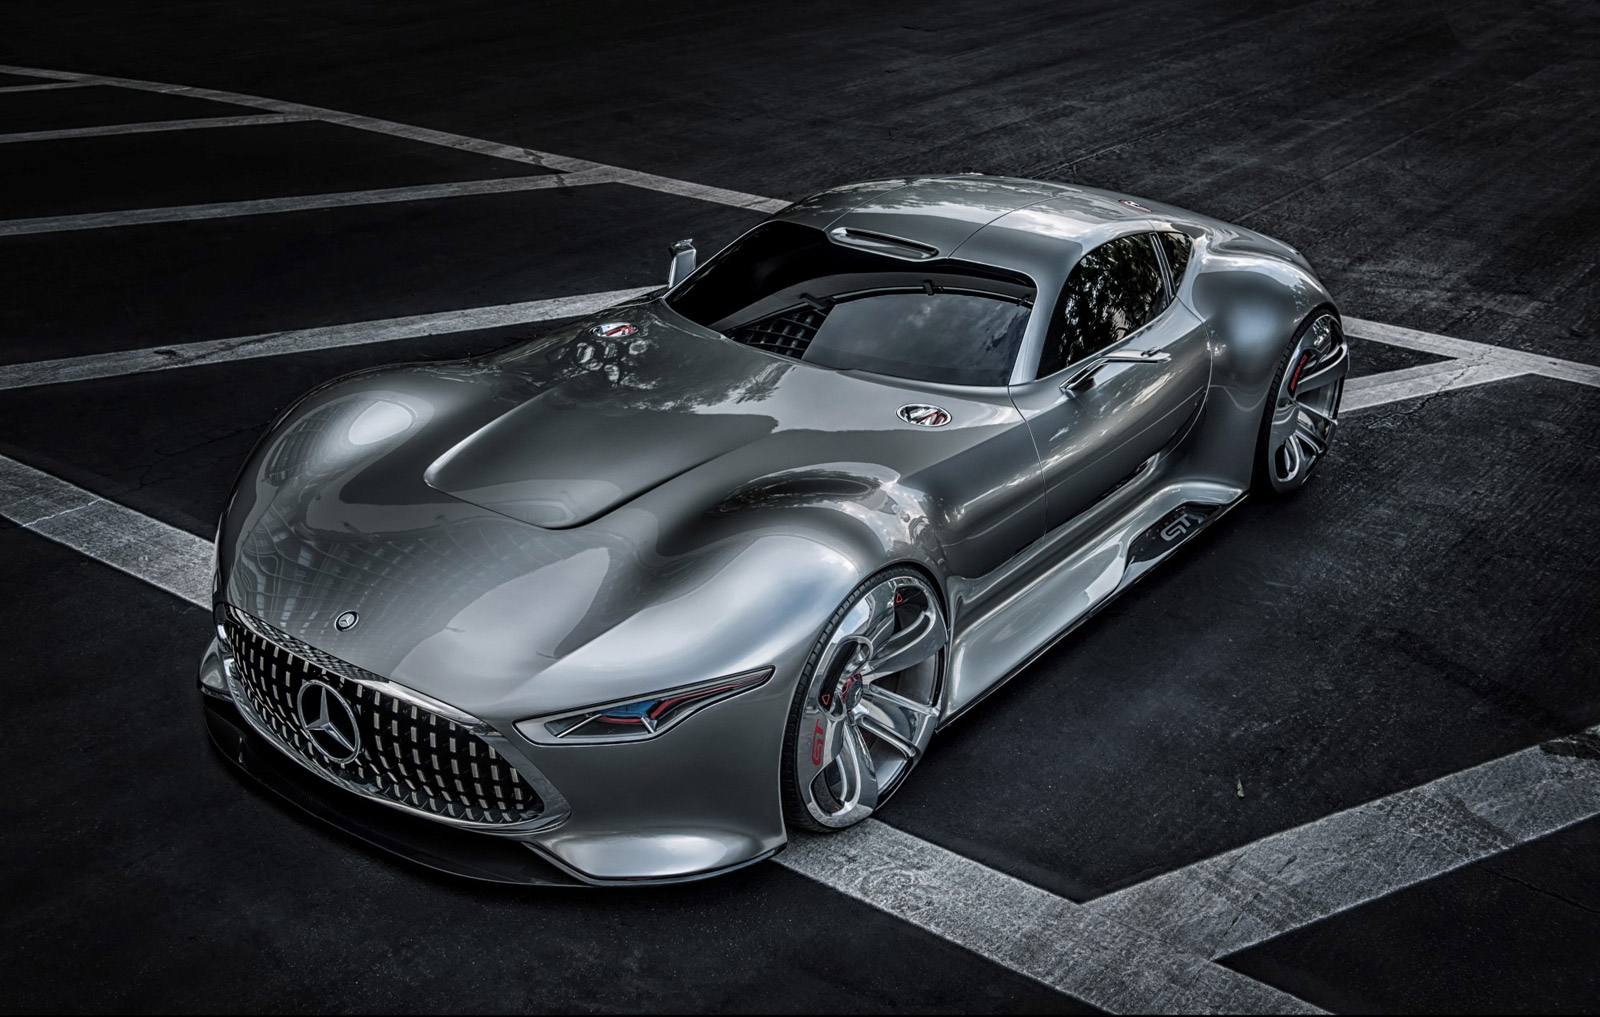 production version of mercedes-benz vision gt in the works?